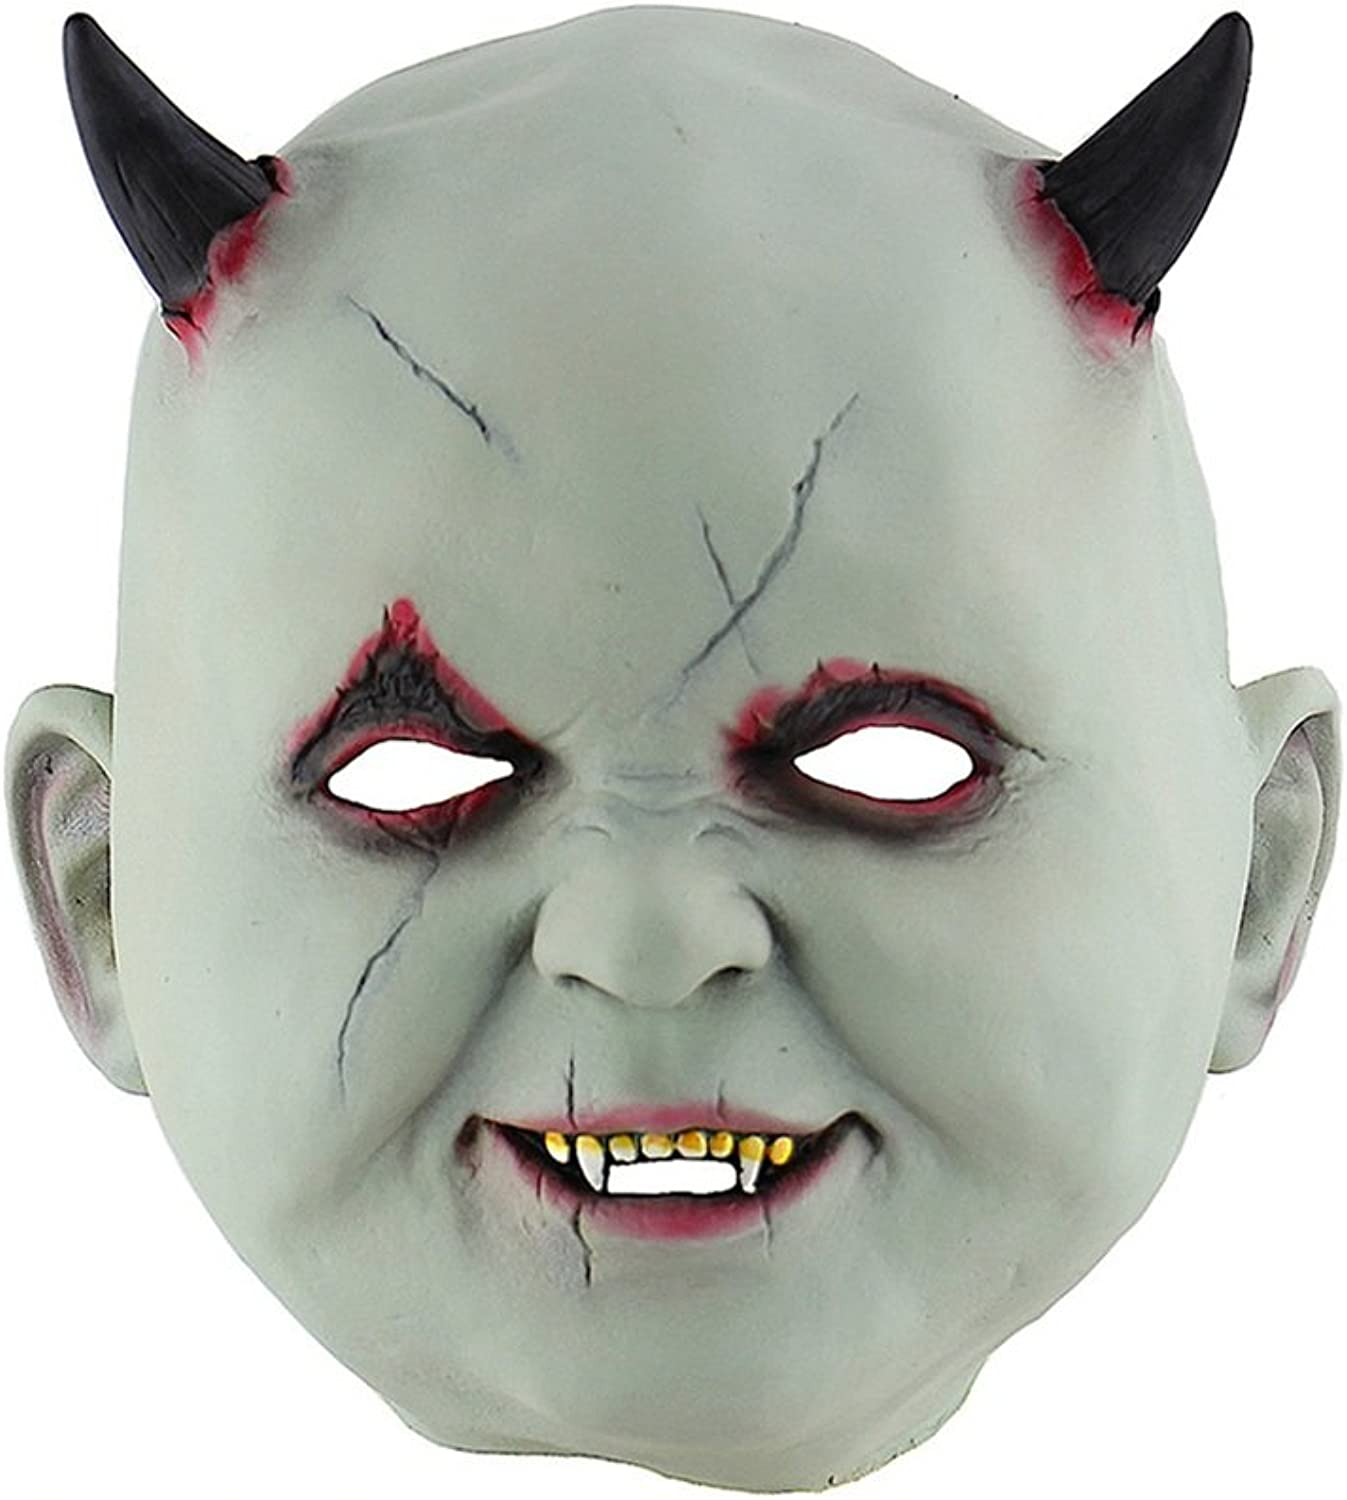 JTWJ Little Devil Vampire Halloween Mask Horror Zombie Haunted House Dressing Room Escape Dress Up Props Head Cover